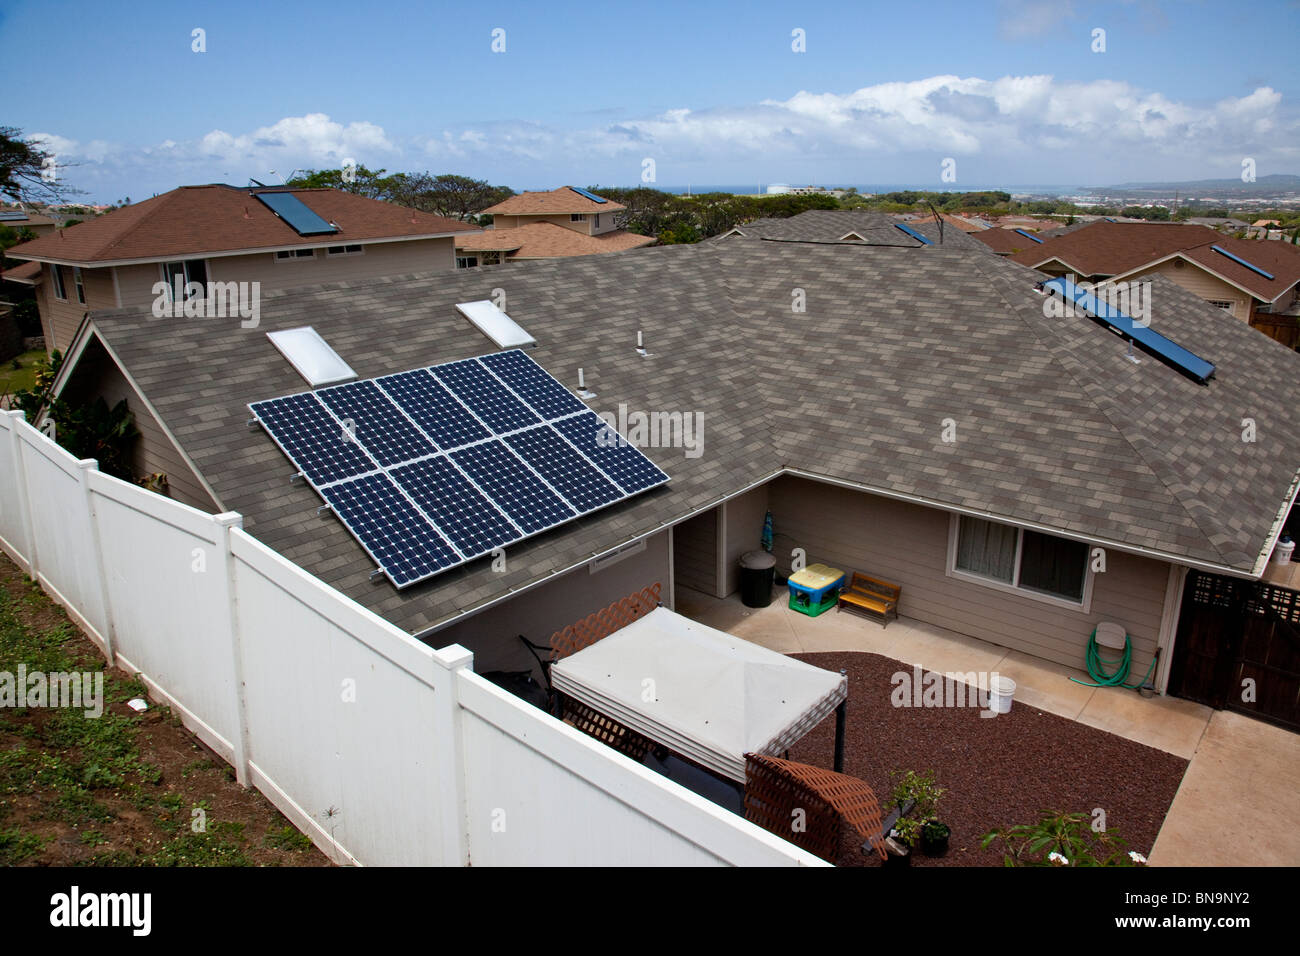 Solar panels on homes in in Wailuku, Maui, Hawaii - Stock Image